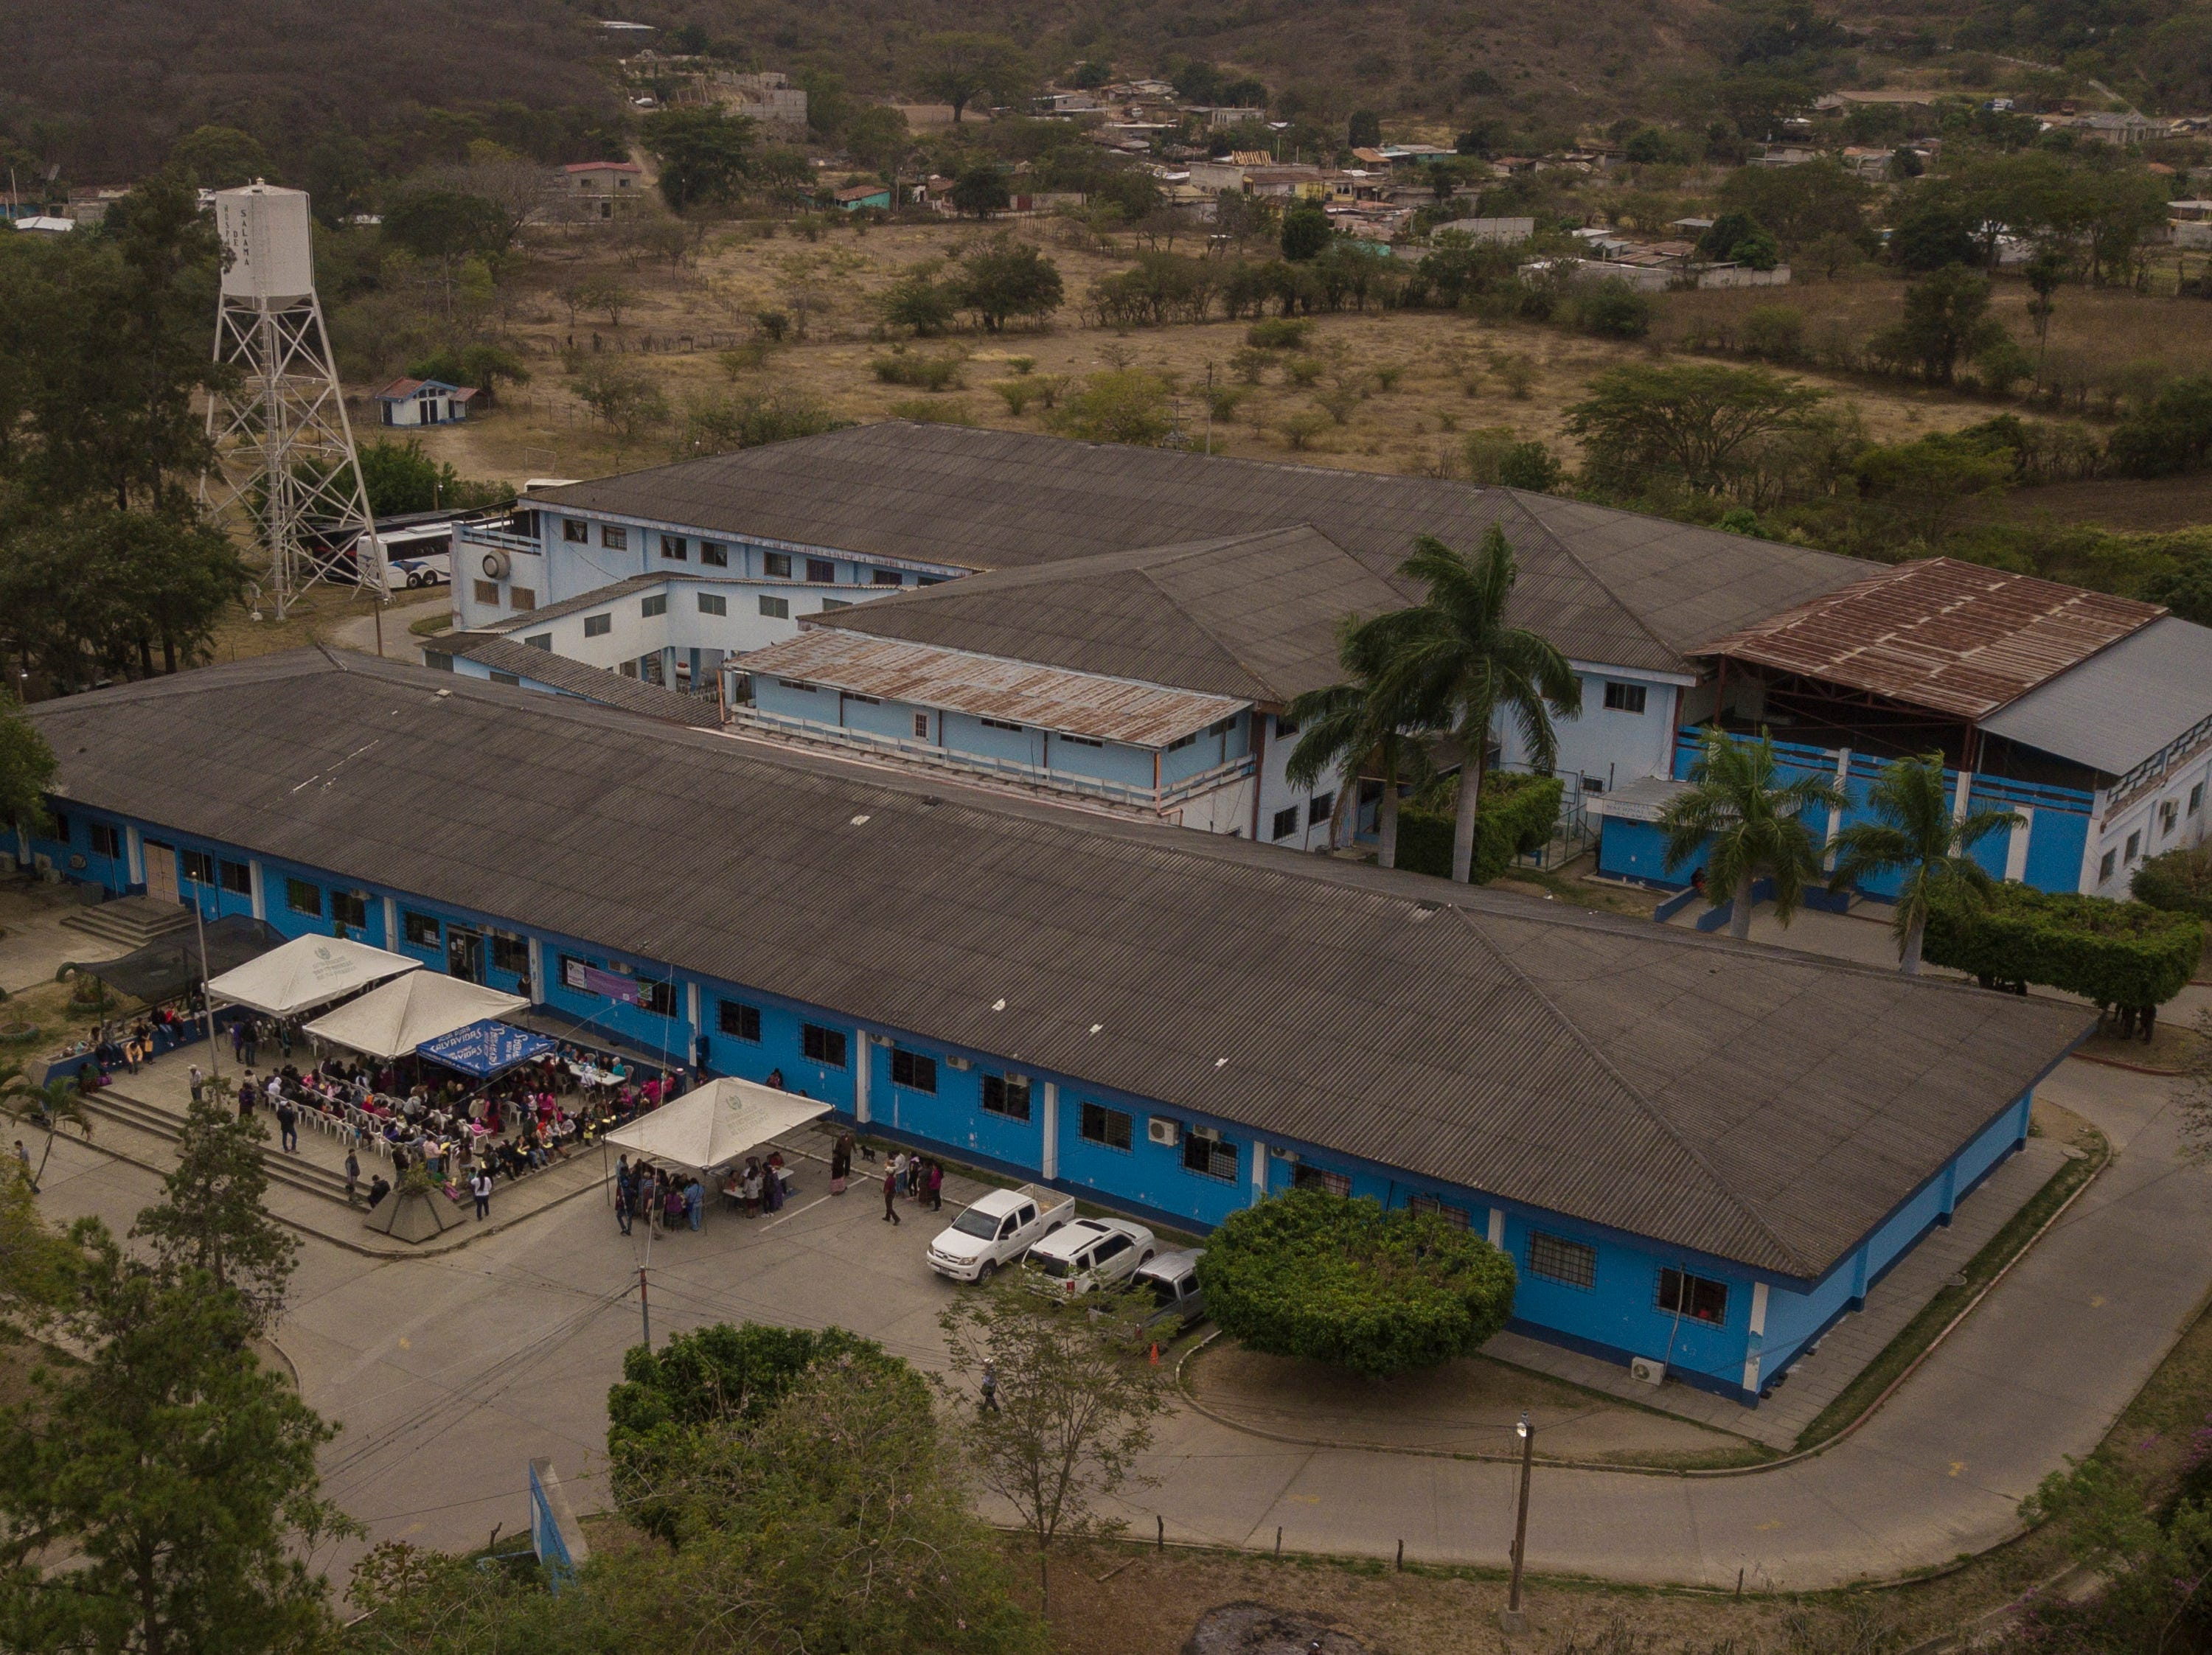 An overview of the Hospital Nacional de Salamá in Salamá, Guatemala where the 2019 COTA medical mission served over 2,000 patients. Jan. 20, 2019